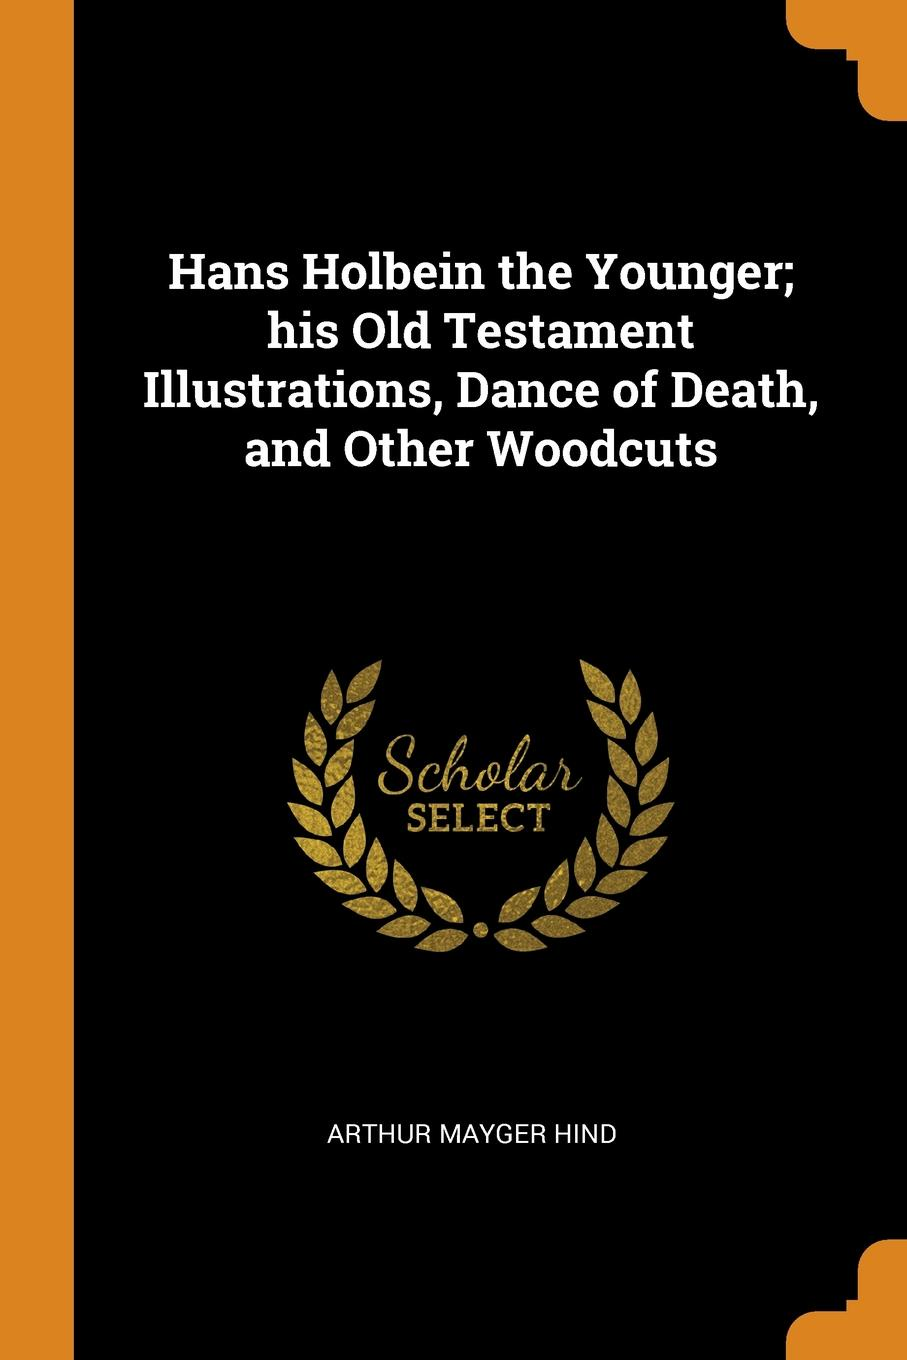 Arthur Mayger Hind Hans Holbein the Younger; his Old Testament Illustrations, Dance of Death, and Other Woodcuts paul ganz the work of hans holbein reproduced in 252 illustrations